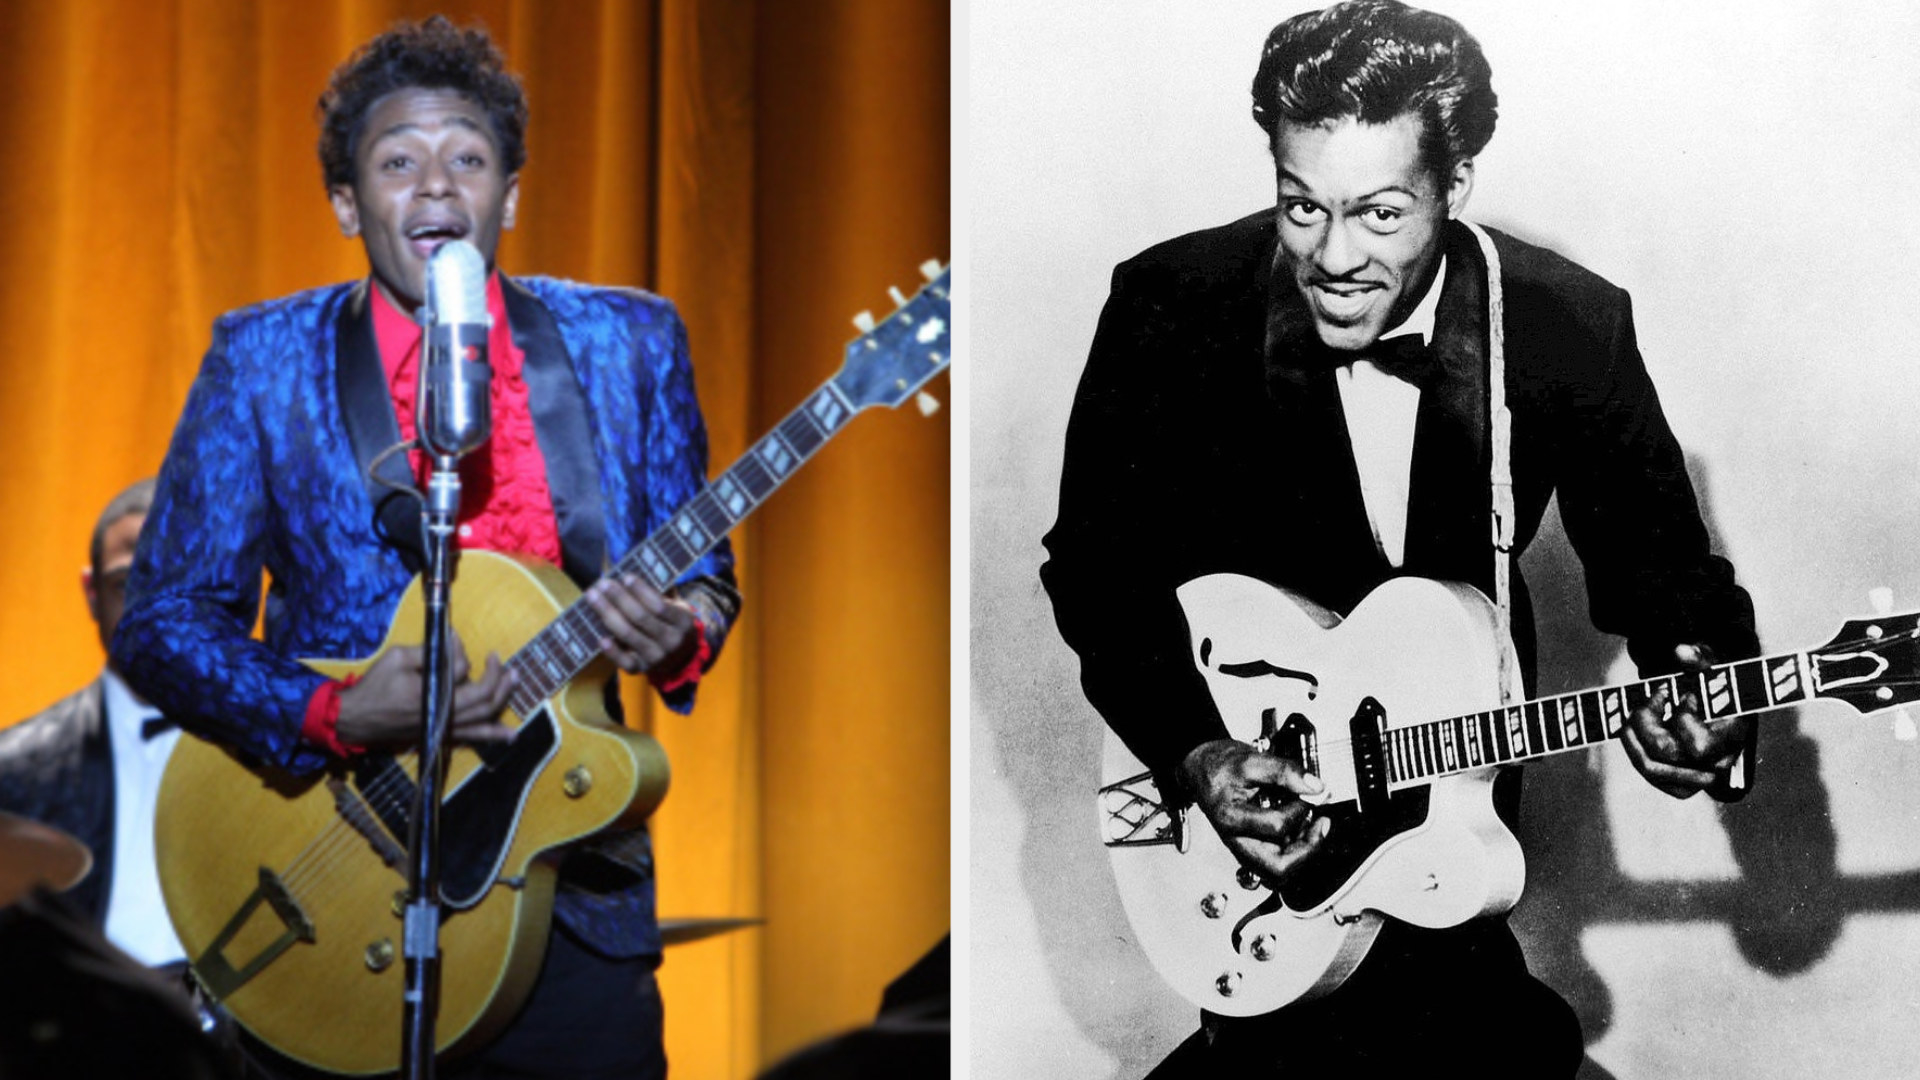 Yassin Bey as Chuck Berry, wearing a fun suit and performing in a playful manner during a concert, holding a big electric guitar, Chuck Berry posing with his electric guitar in a suit and bowtie, kneeling down with a playful smile